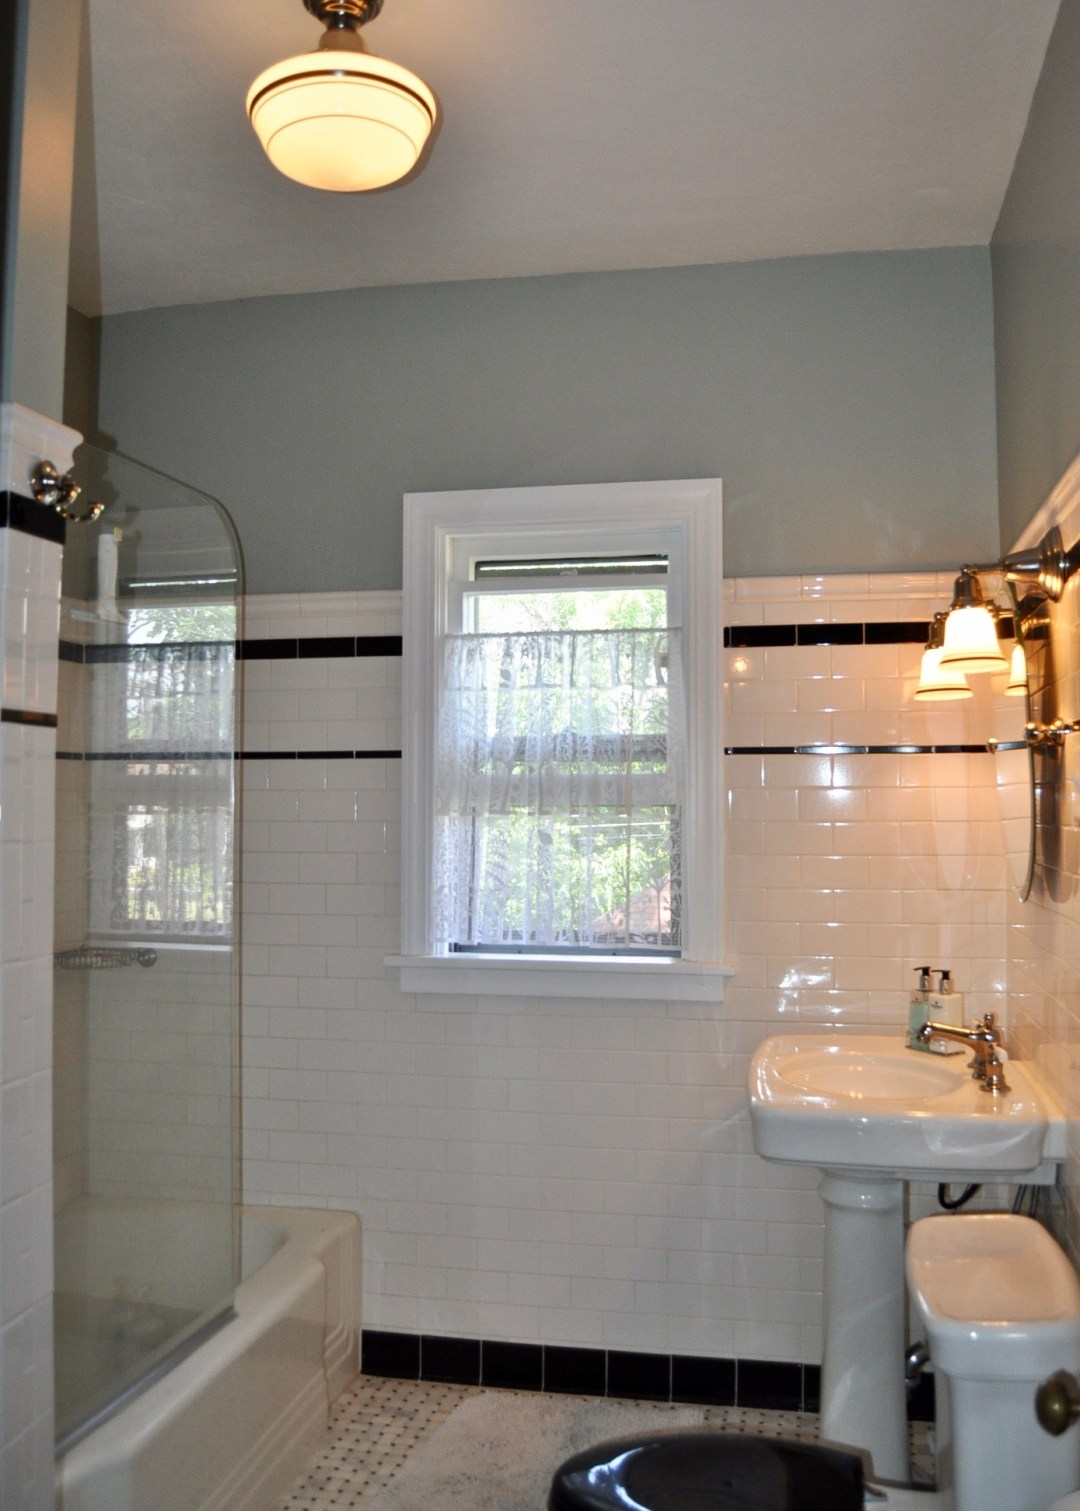 Renovated bathroom with 1920's finishes